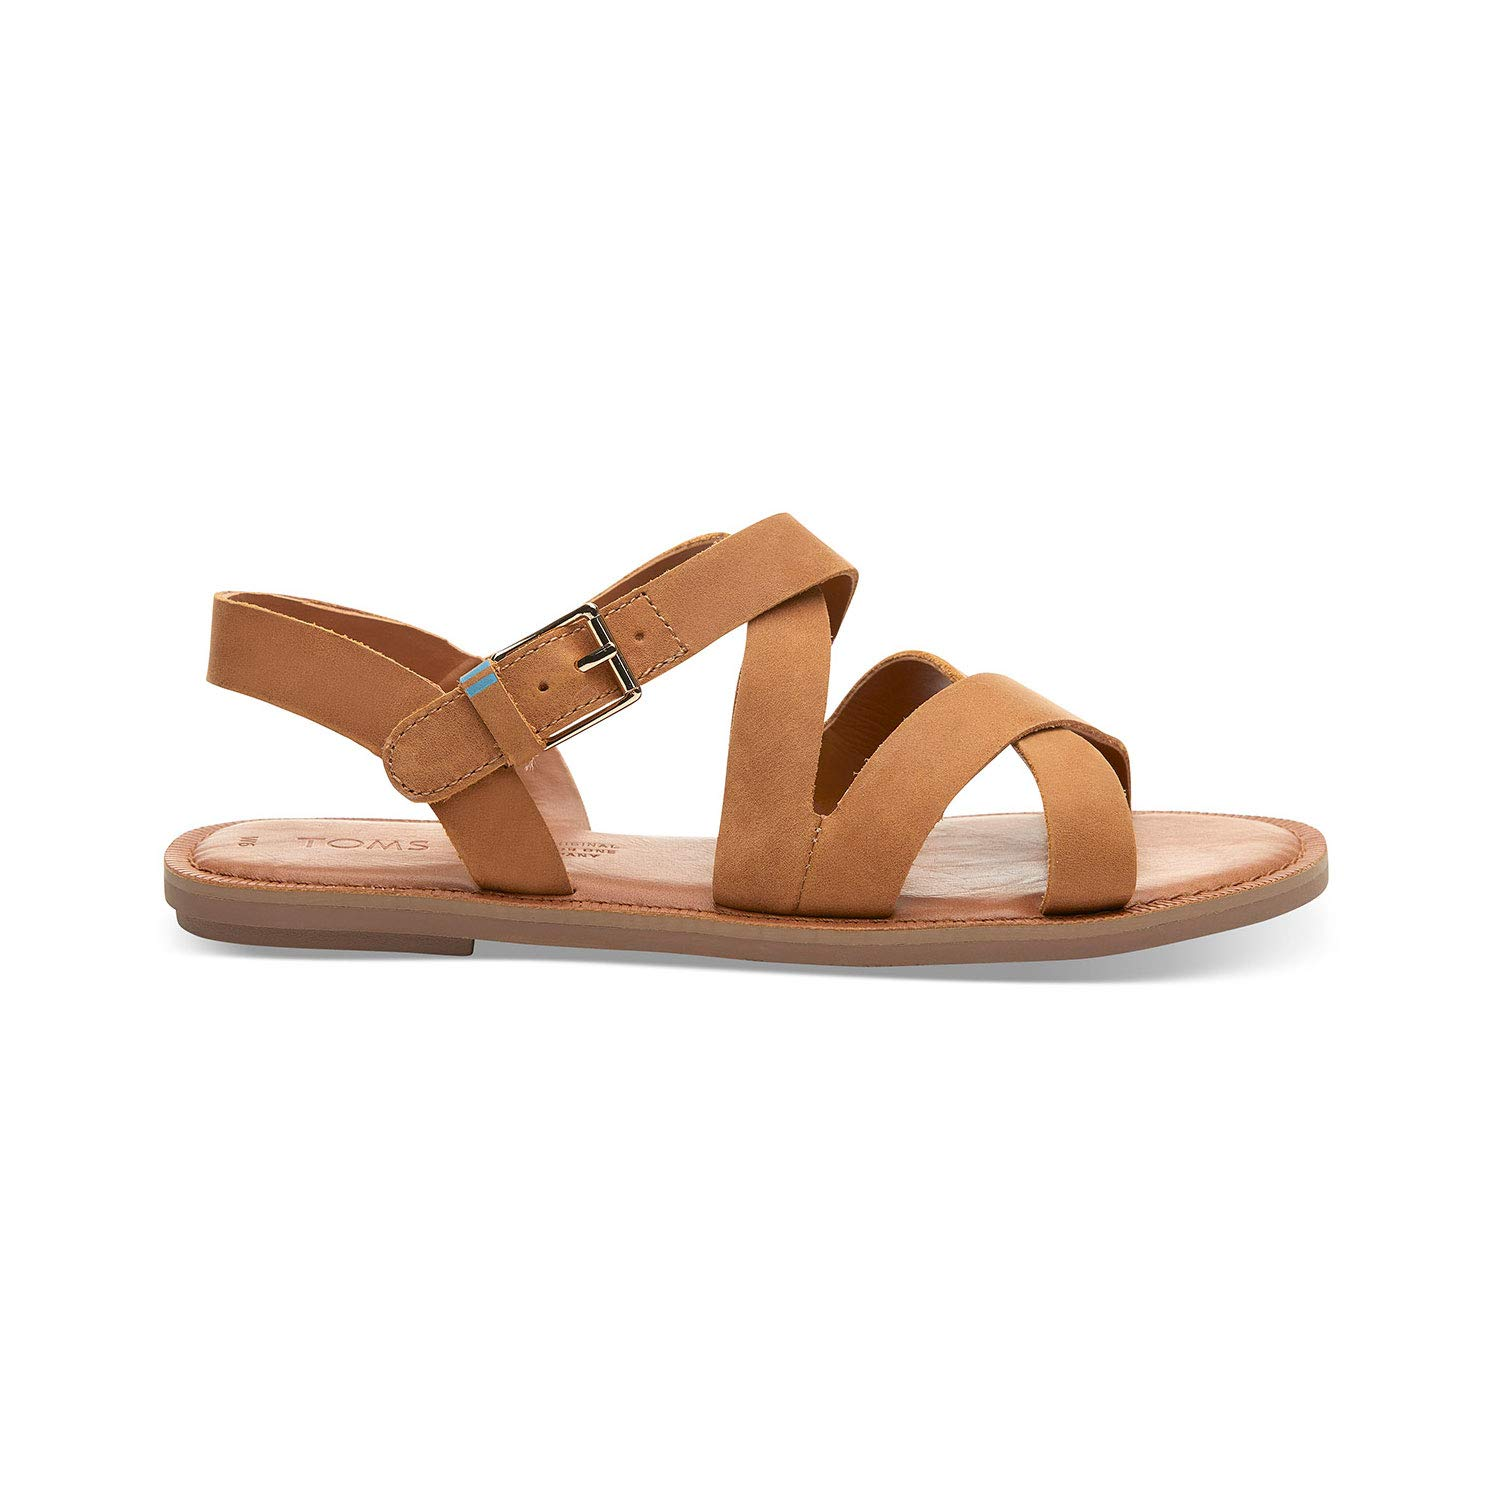 TOMS Tan Leather Women's Sicily Sandals (Size: 9)